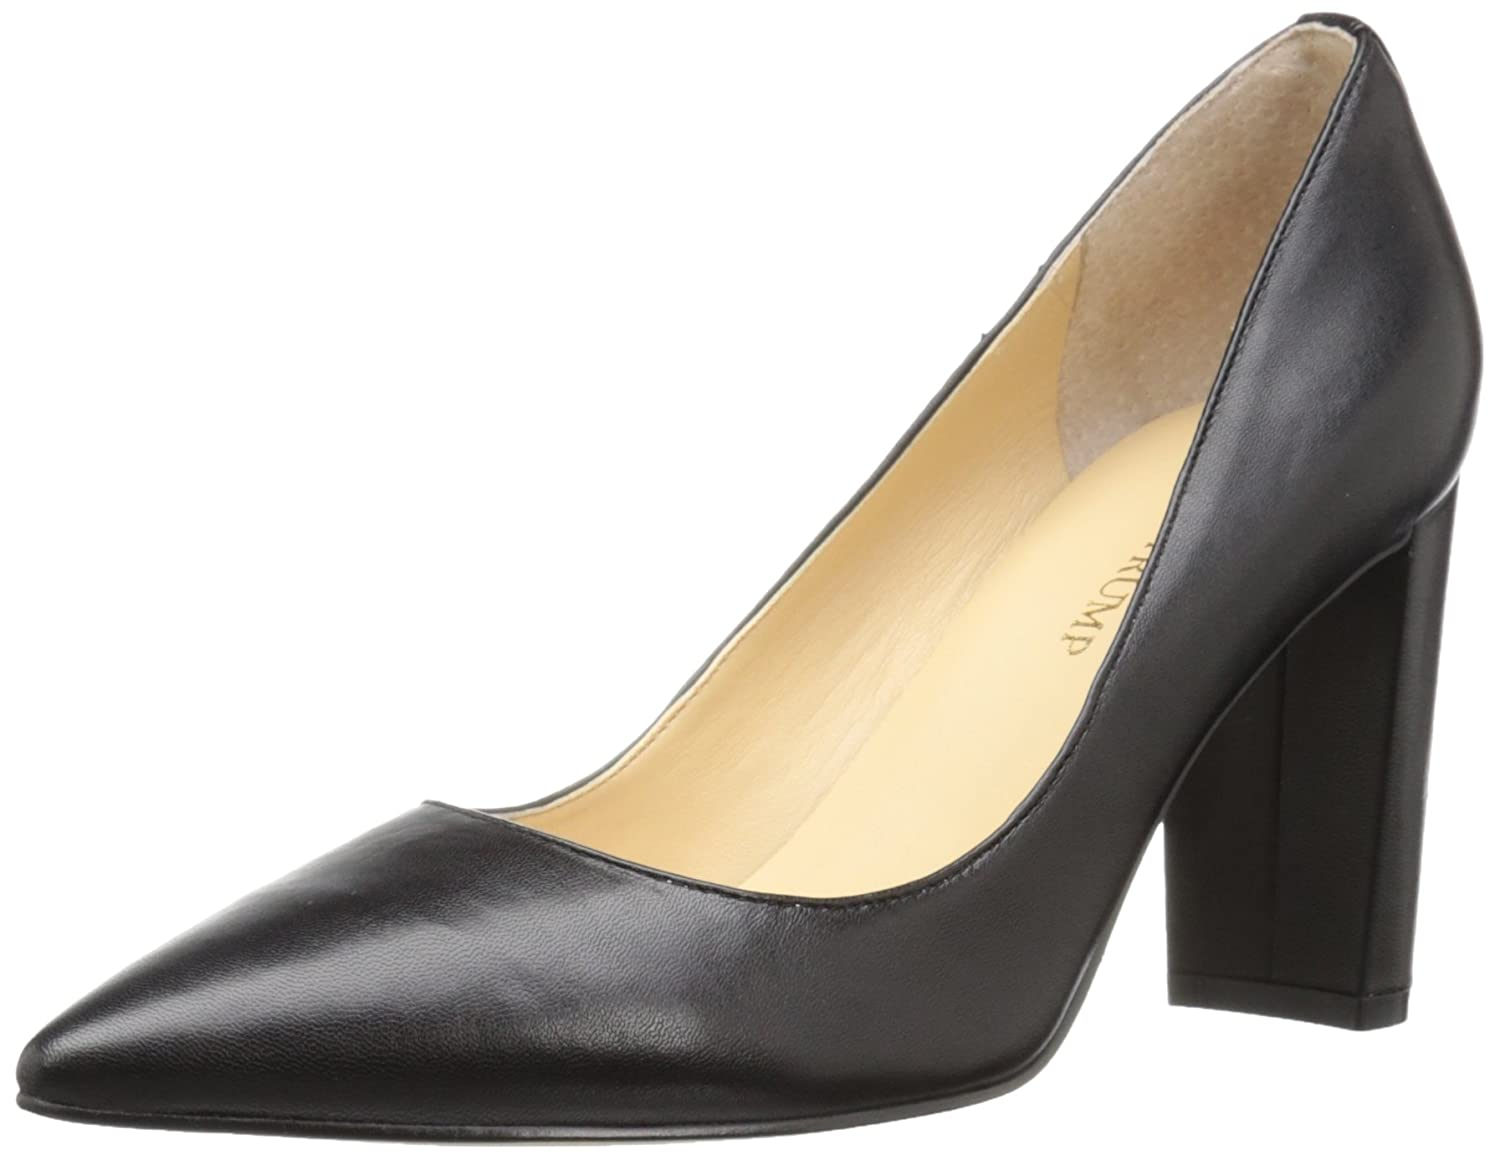 Ivanka Trump Women's Katie Dress Pump B01CDUSHRM 7 B(M) US|Black Leather